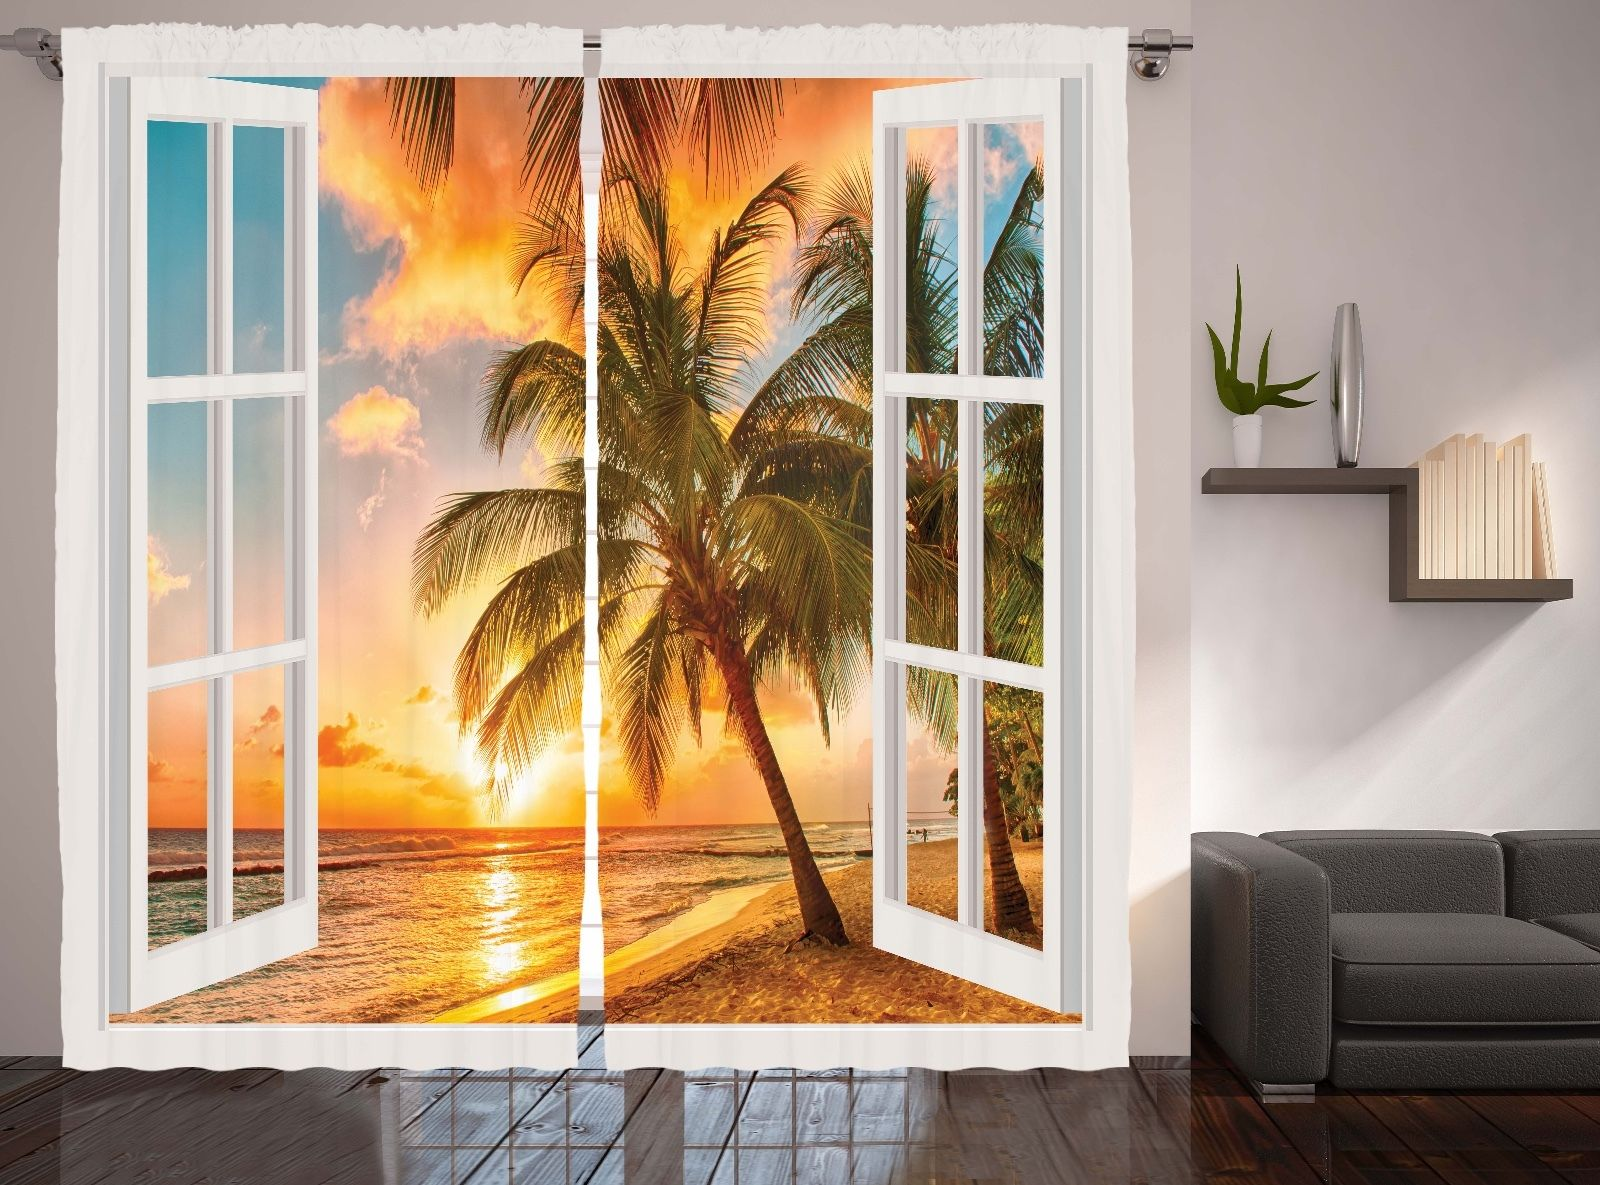 5 Panel Window : Window view decor collection palm trees sunset scenery